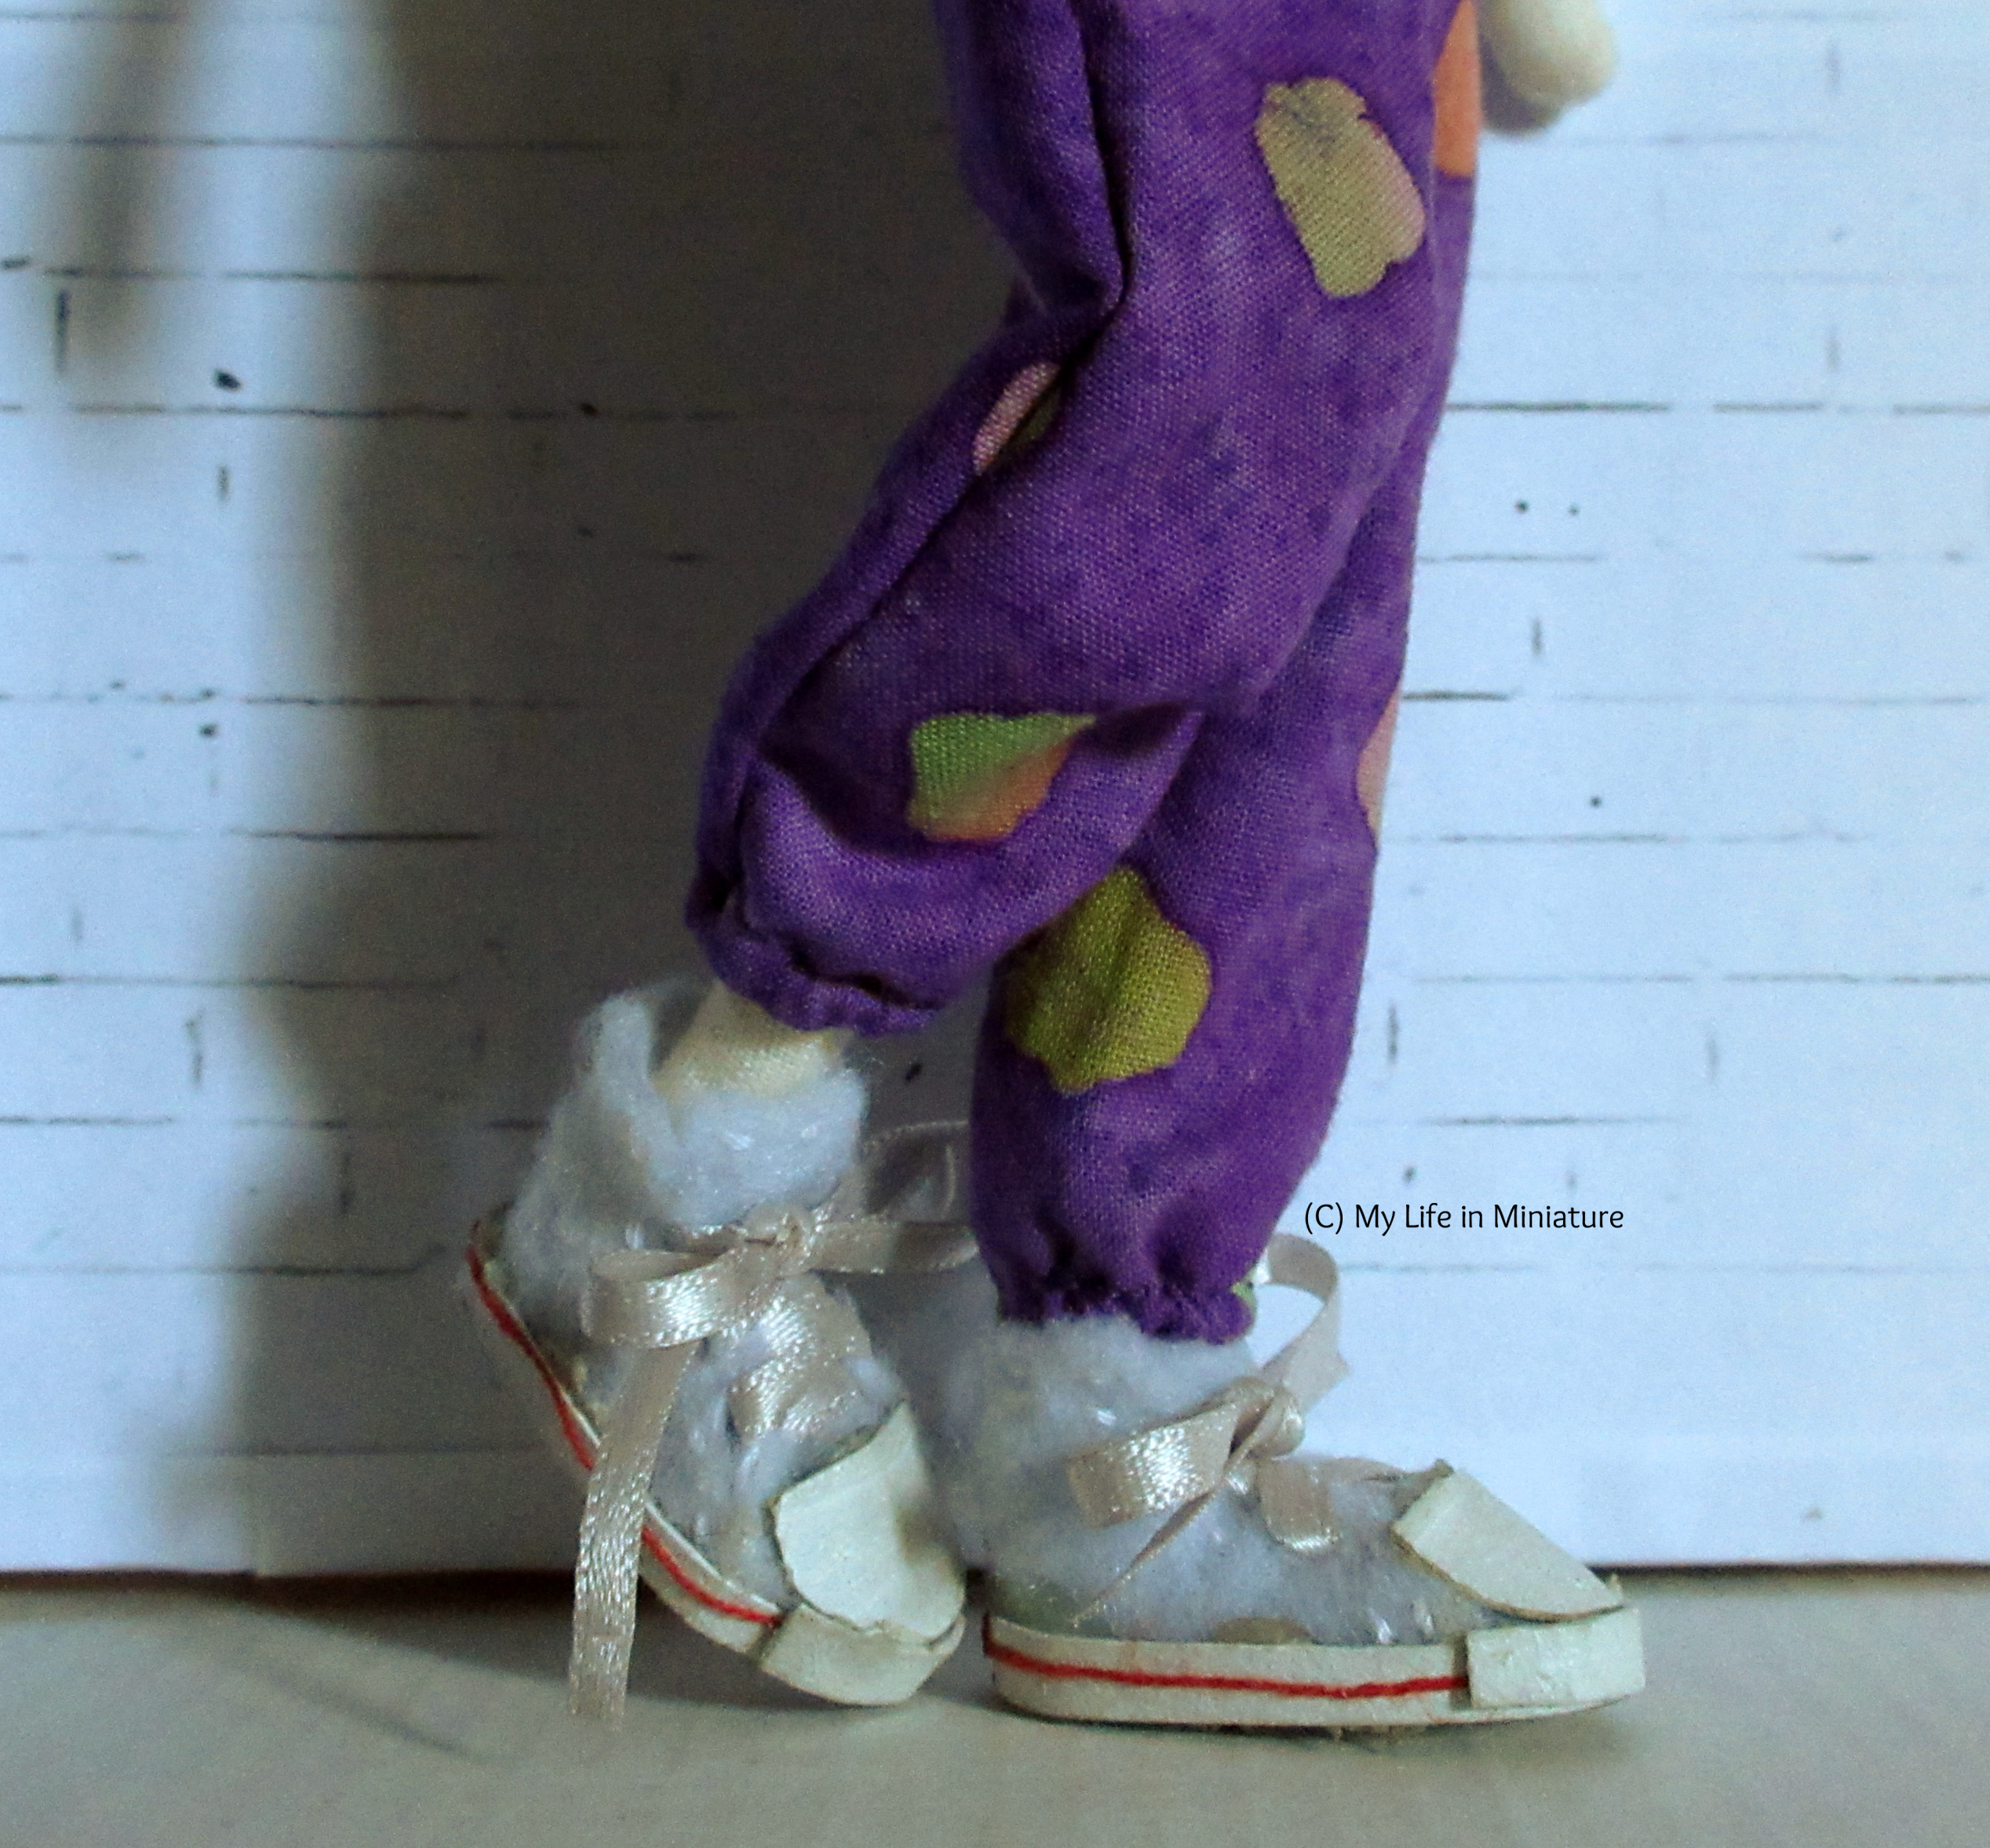 Close-up of the elasticated ankles of the pants, creating a balloon-sleeve-esque effect.